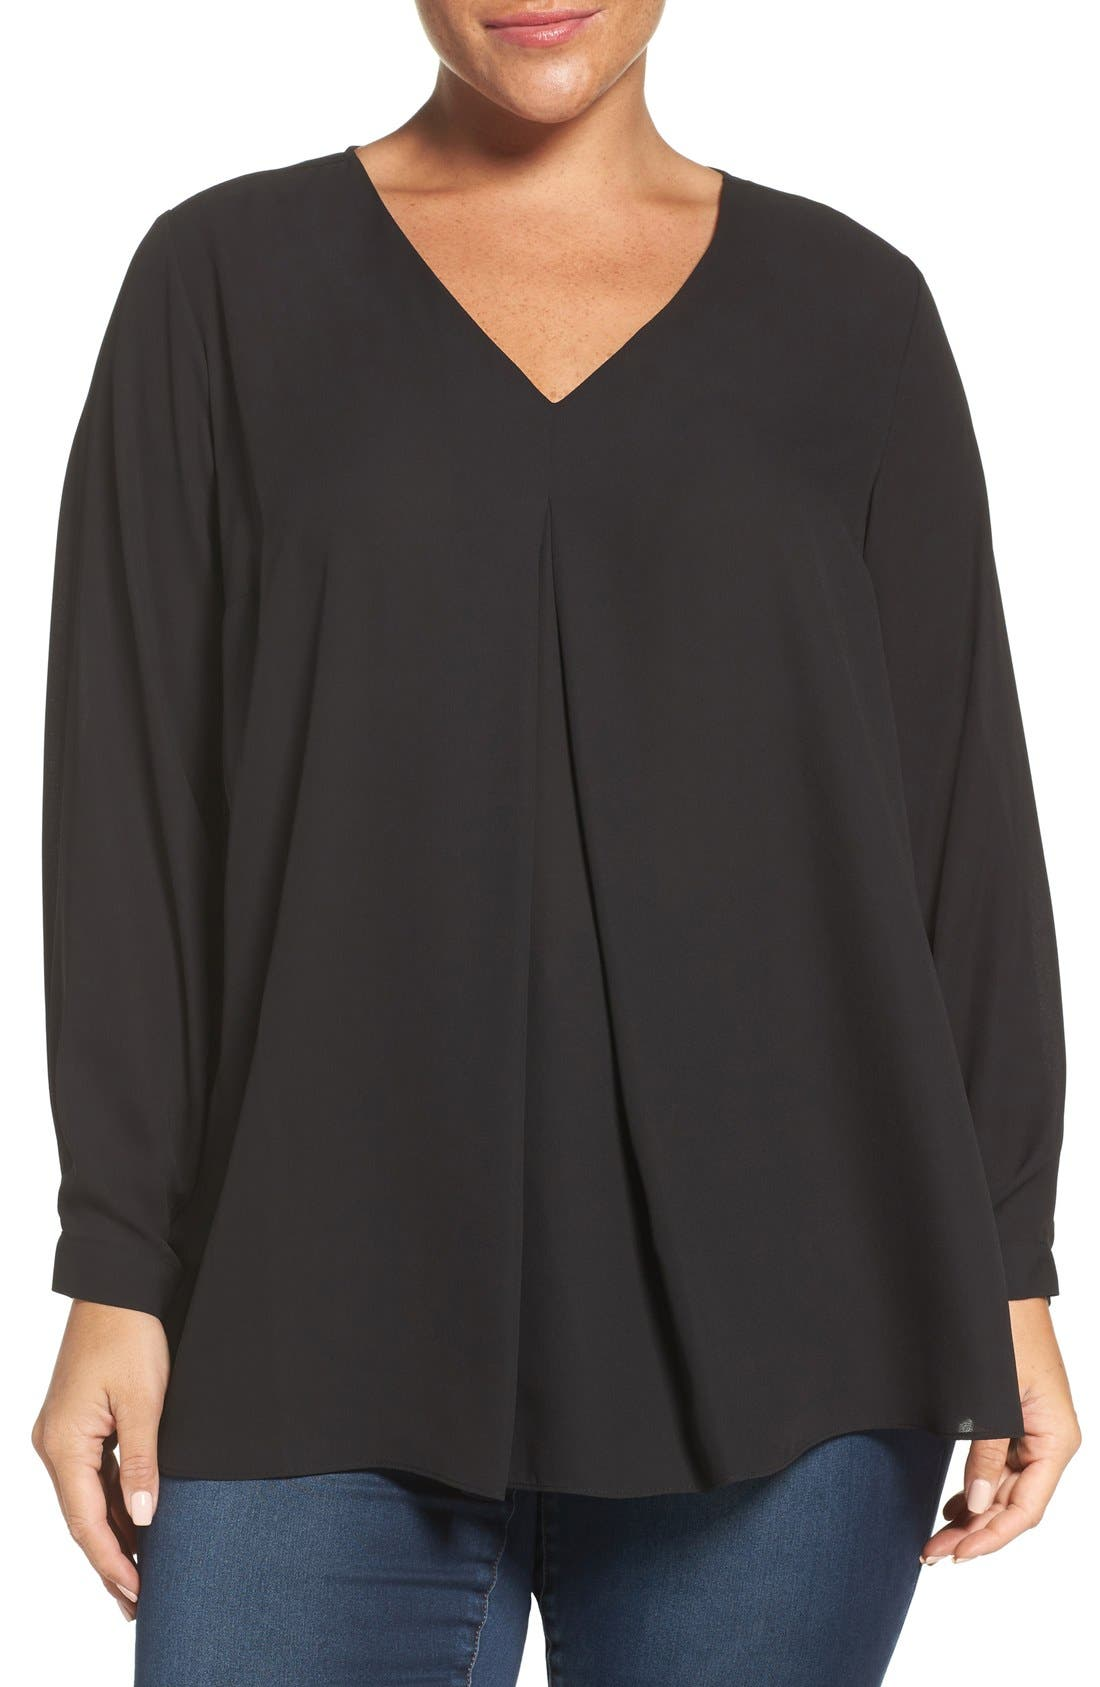 Vince Camuto Pleat Front V-Neck Blouse (Plus Size)